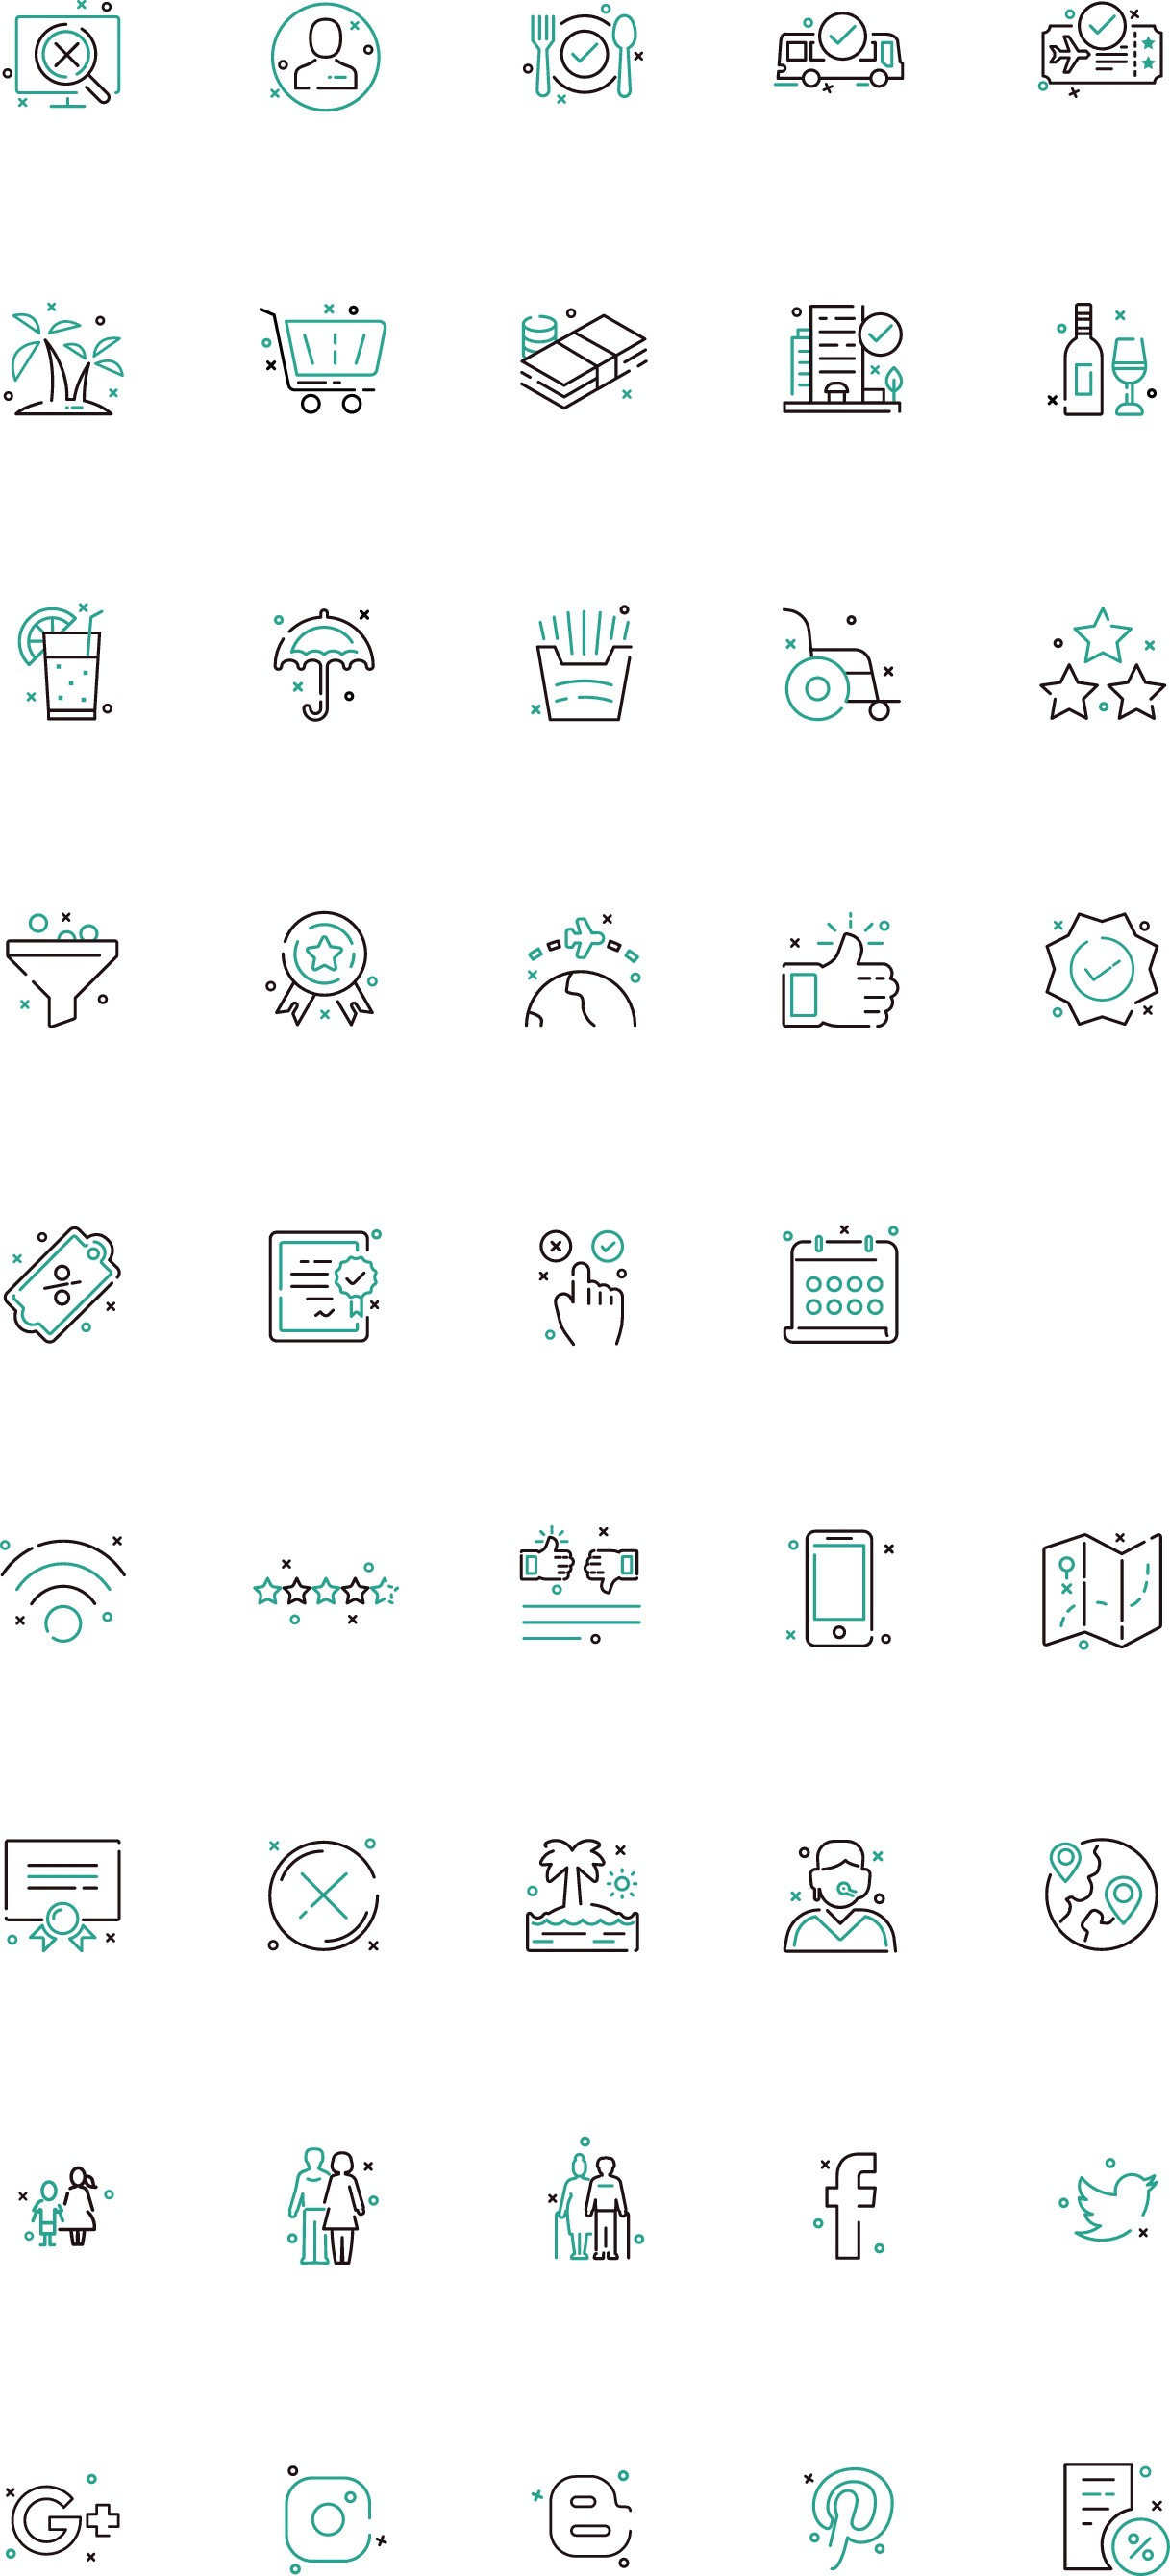 14 new icons from previous 30 icons project